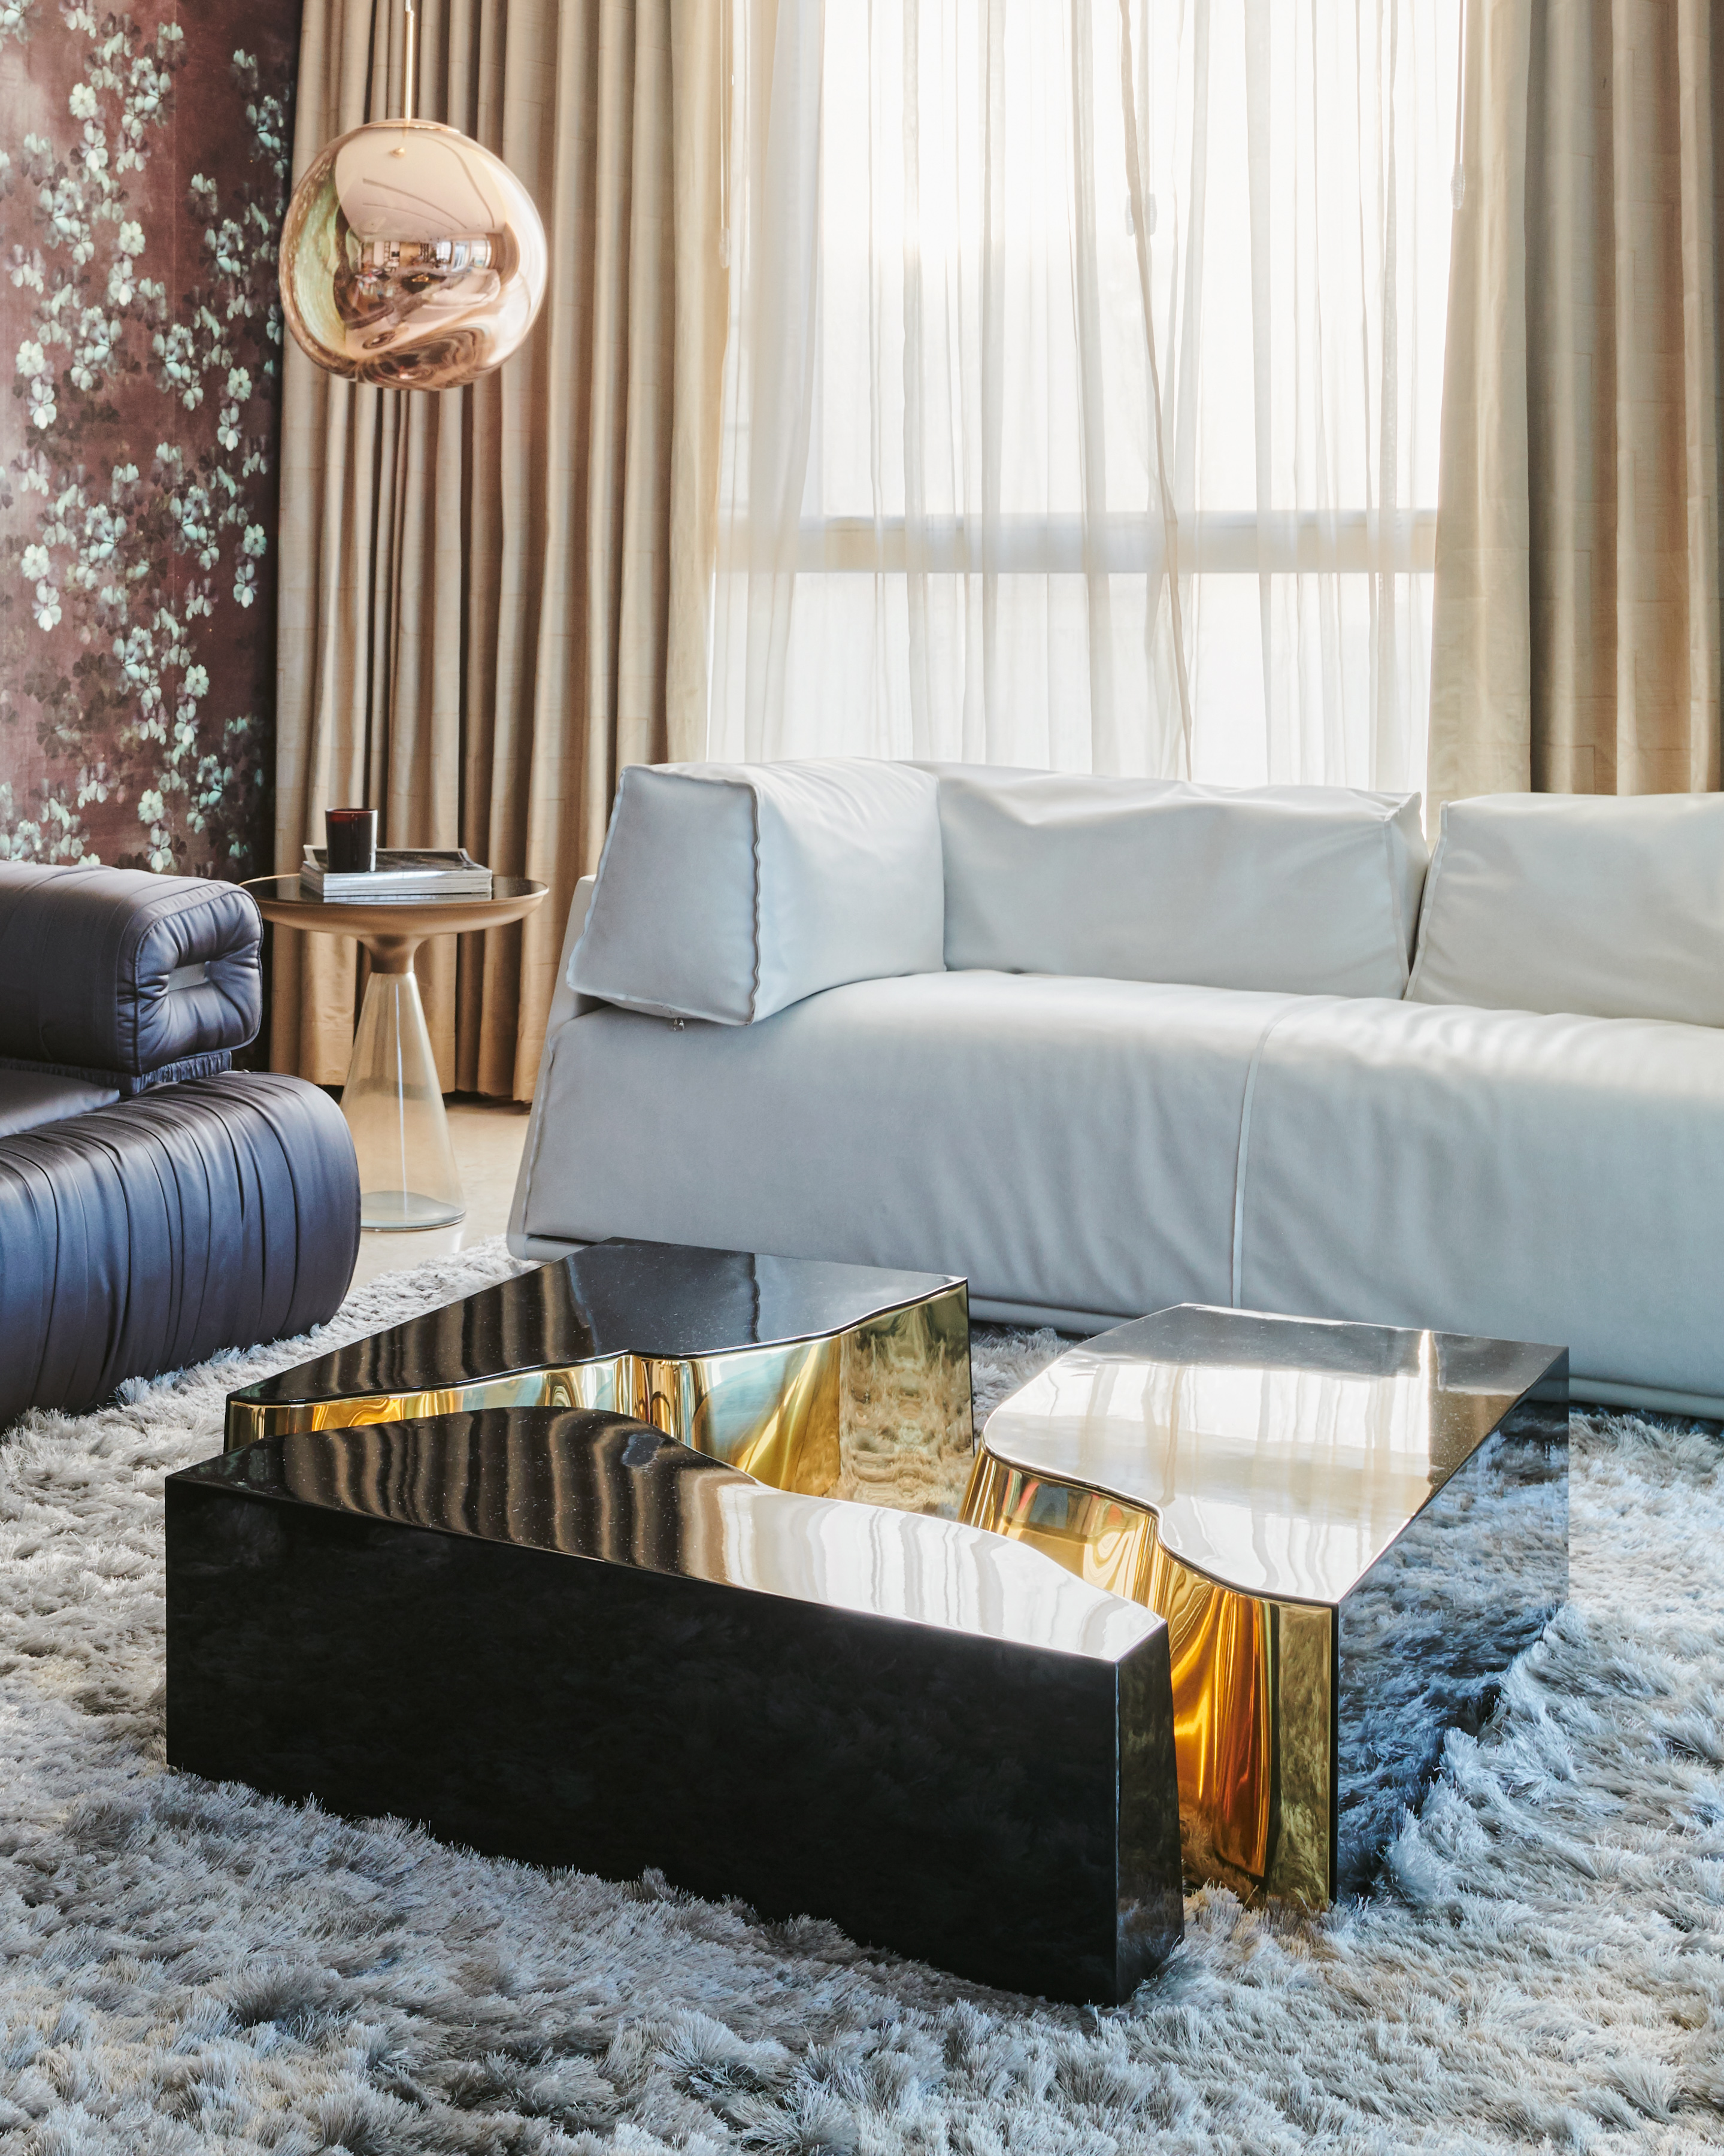 A Luxury Apartment That Magnifies The Exclusive Lifestyle Experience luxury apartment A Luxury Apartment That Magnifies The Exclusive Lifestyle Experience A Luxury Apartment That Magnifies The Exclusive Lifestyle Experience 14